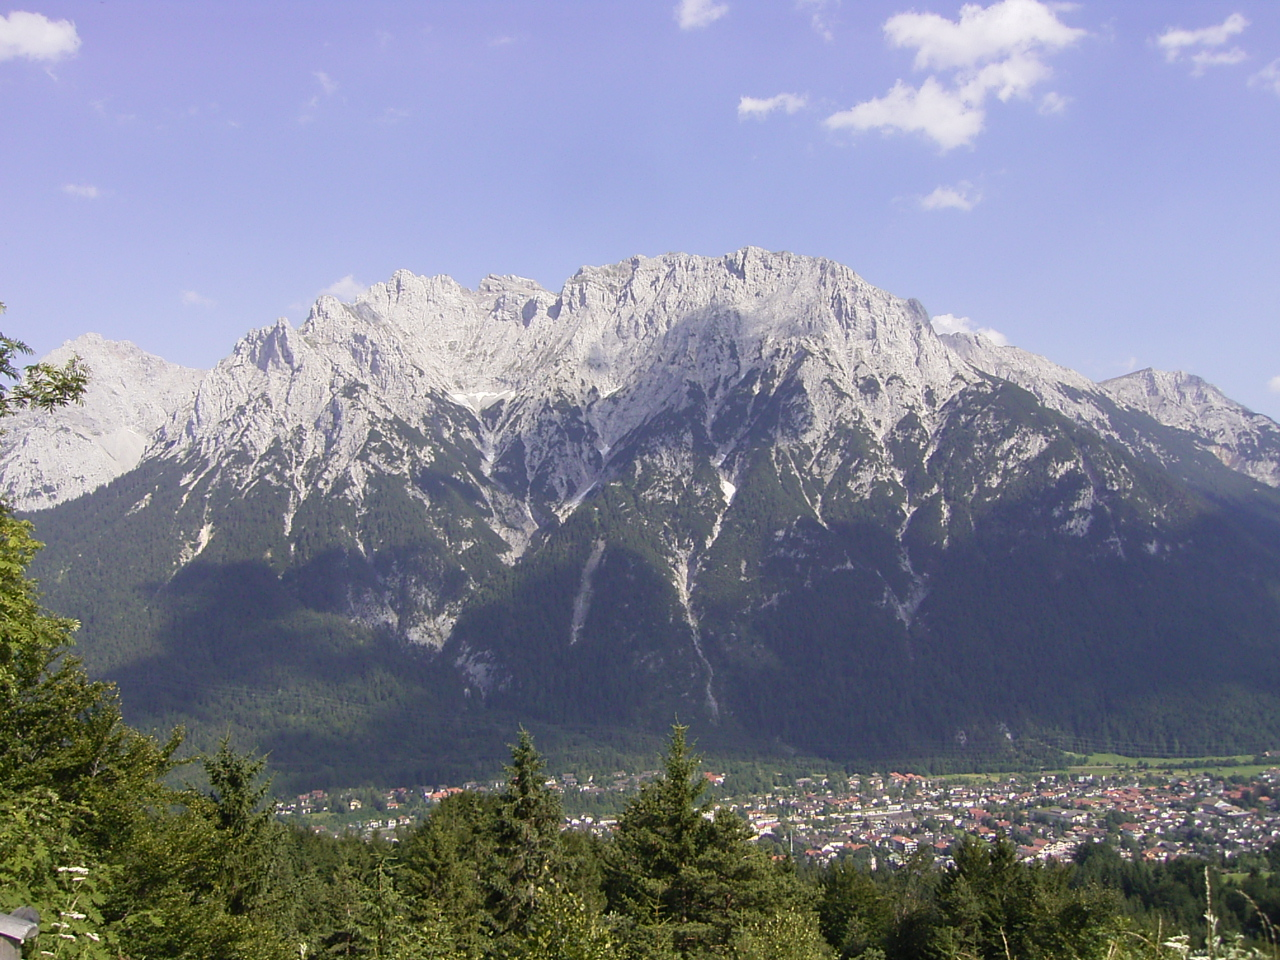 Northern side of the Karwendel mountain